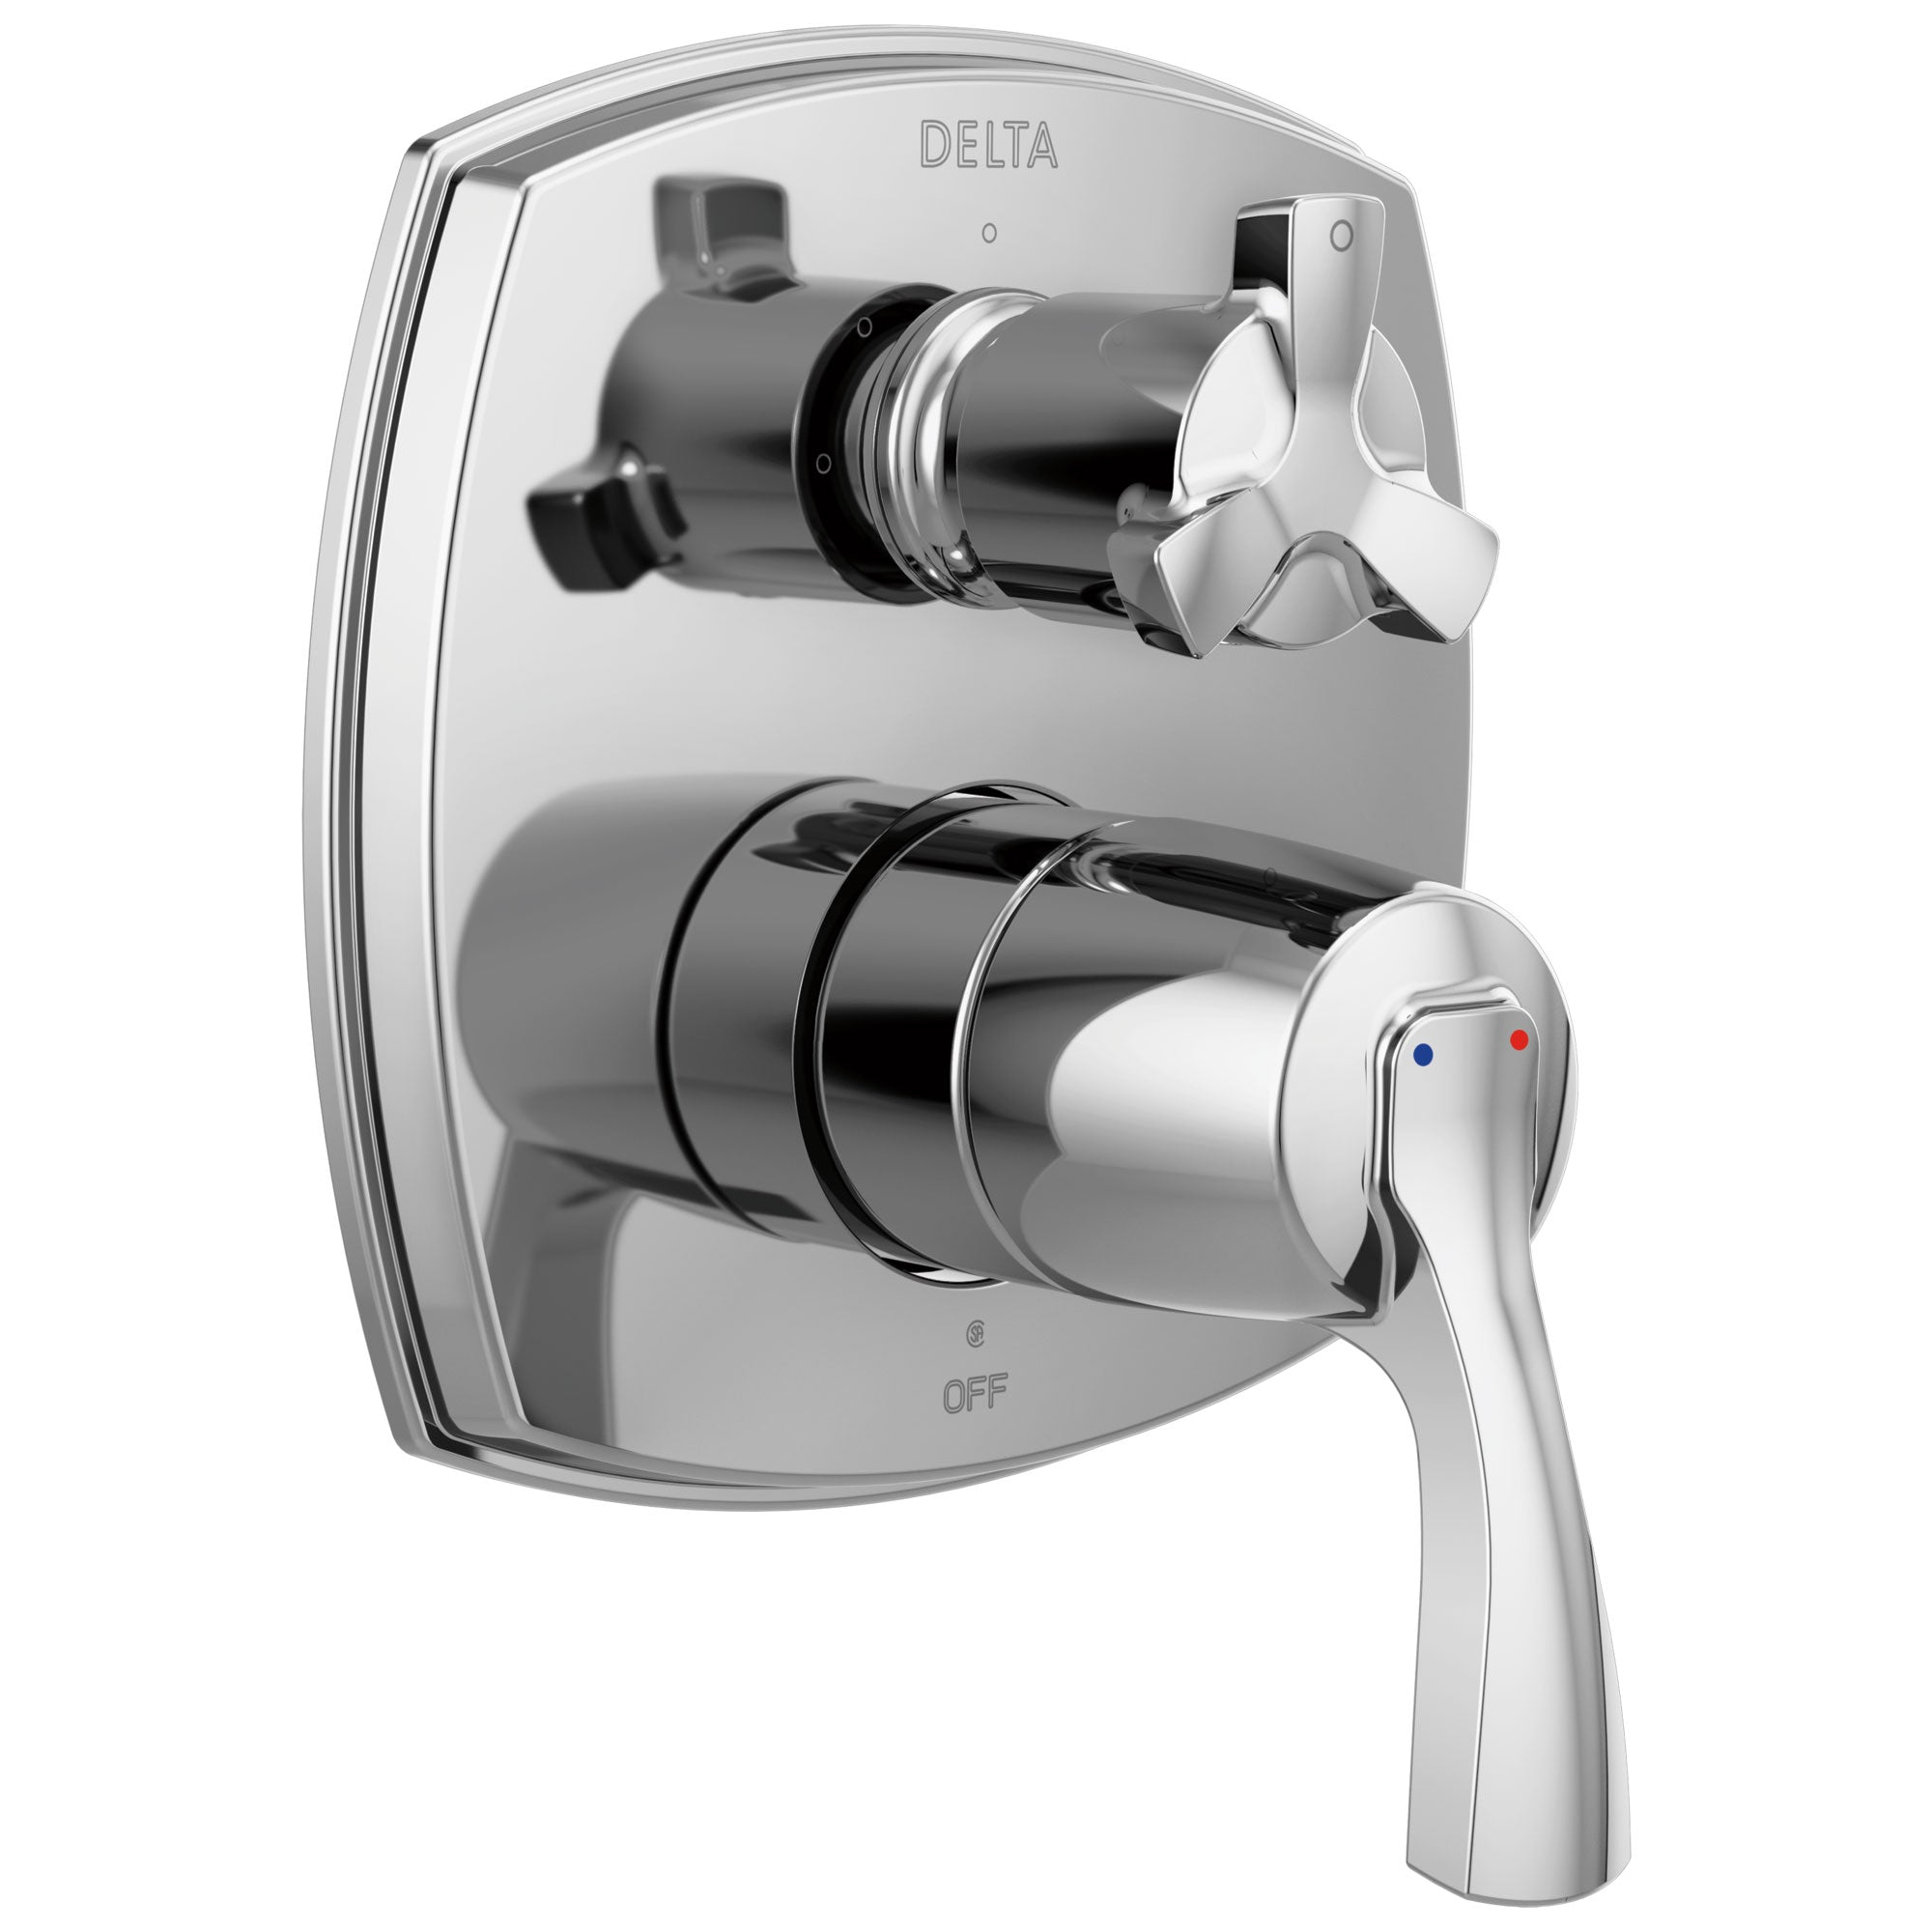 Delta Stryke Chrome Finish 14 Series Shower System Control with 3 Function Integrated Cross Handle Diverter Includes Valve and Handles D3770V